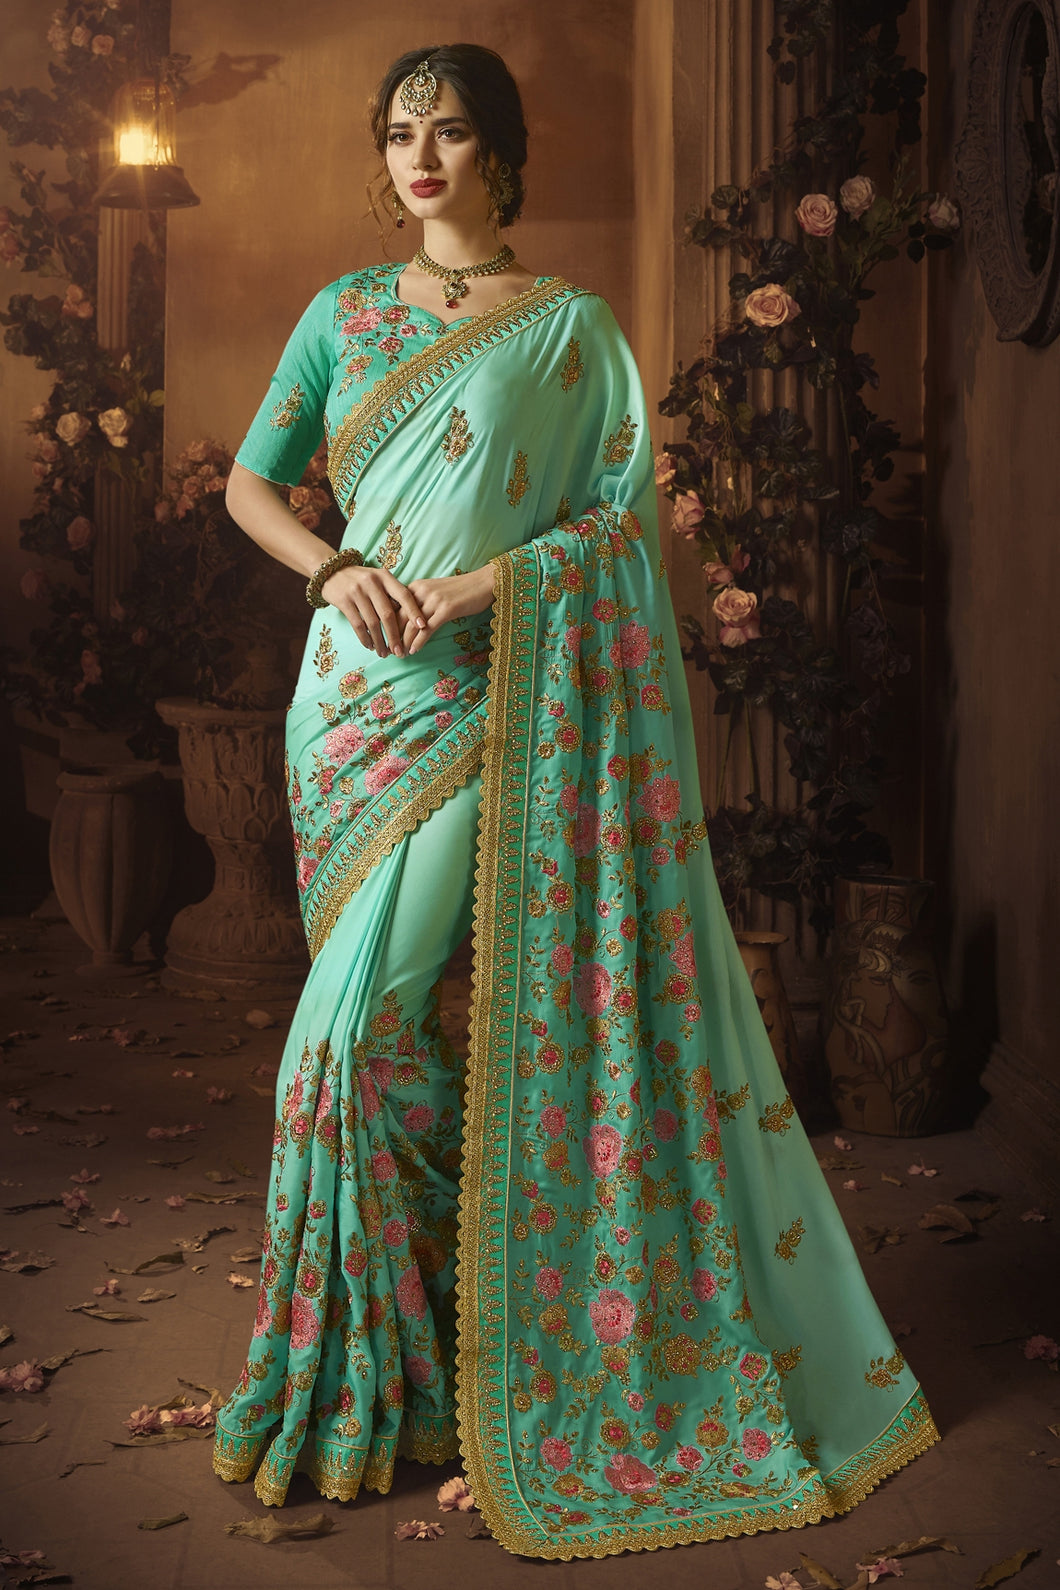 Bhelpuri Aqua Green Silk Zari Resham Embroidered Designer Saree with Blouse Piece